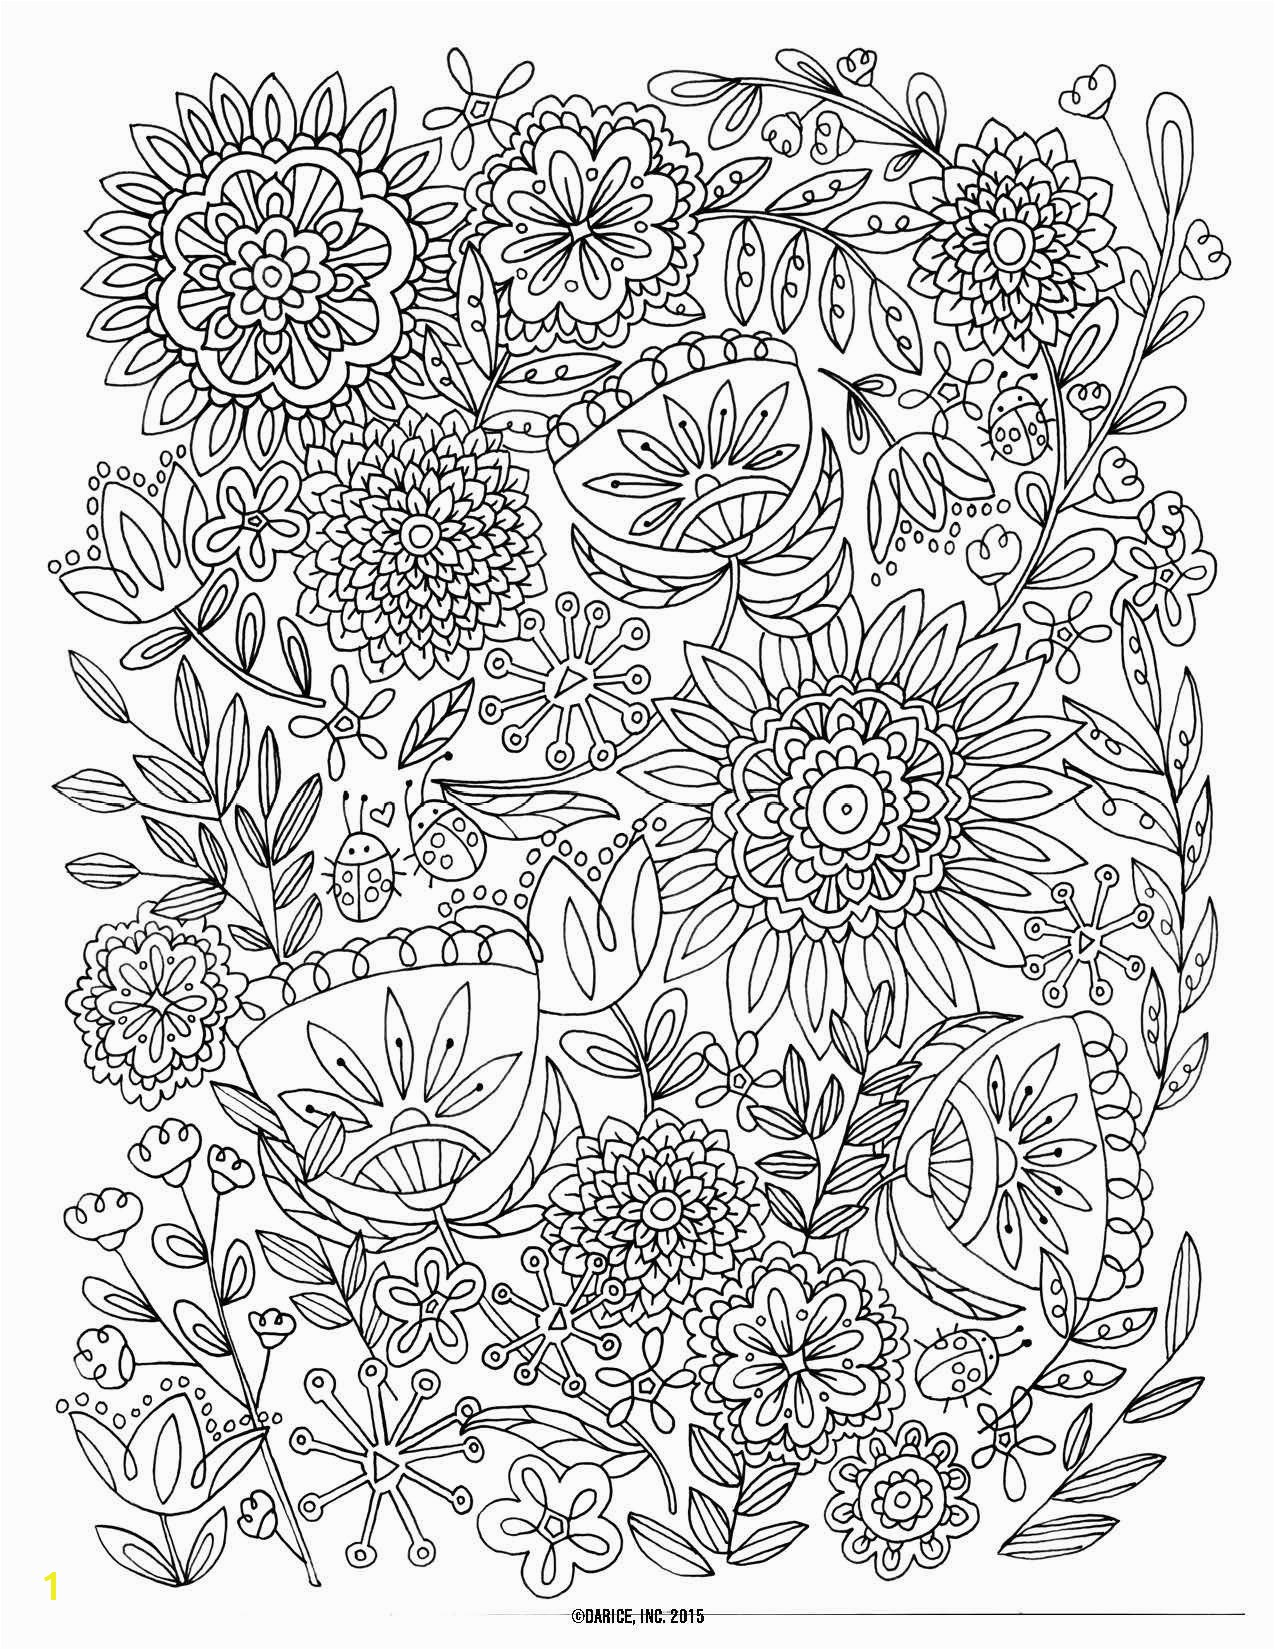 Printable Heart Design Coloring Pages Printable Coloring Pages Archives Page 44 Of 85 Katesgrove